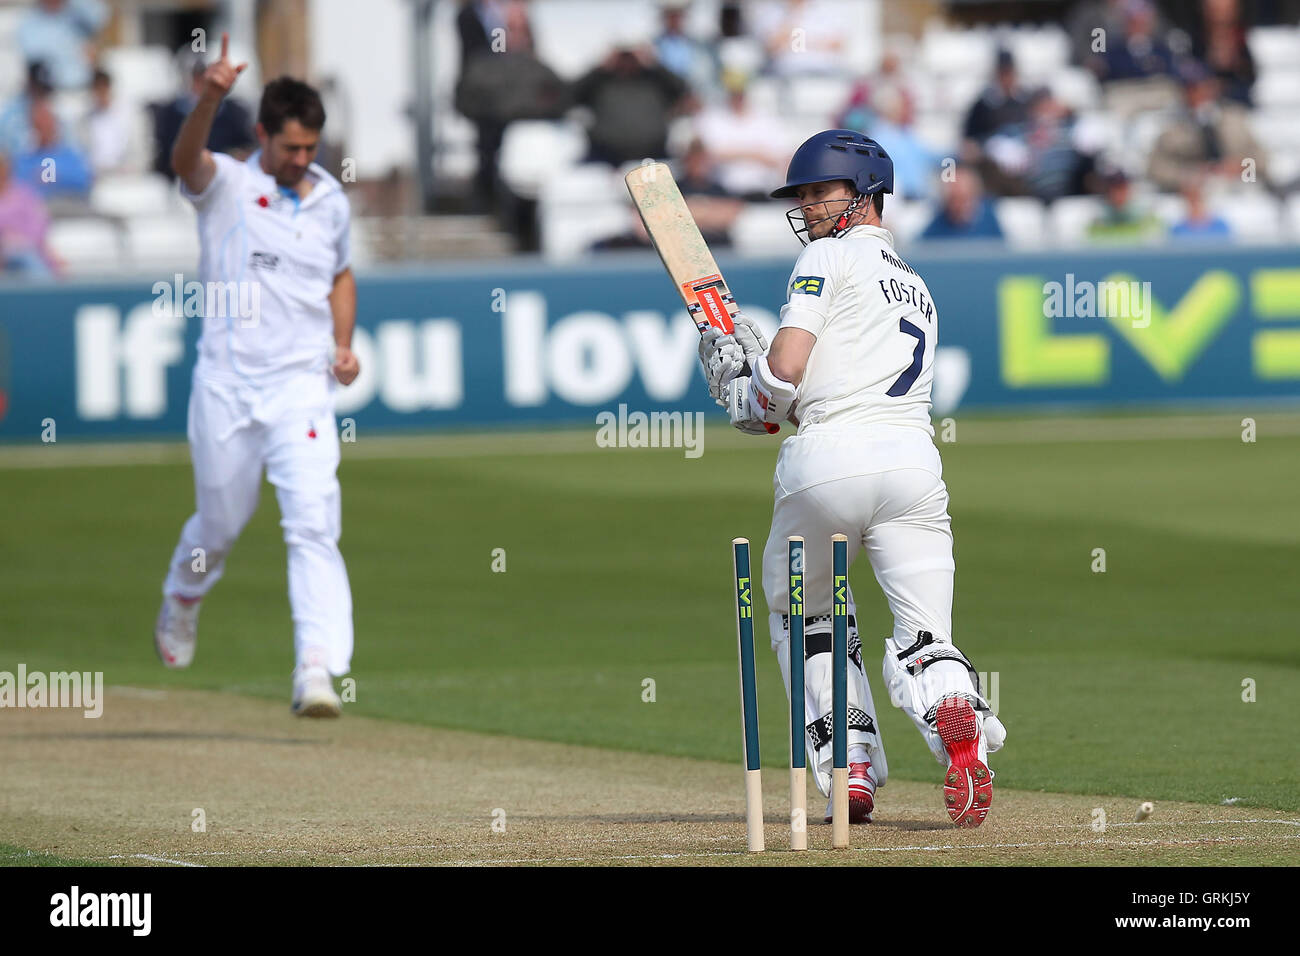 James Foster of Essex is bowled out by Tim Groenewald - Essex CCC vs Derbyshire CCC - LV County Championship Division - Stock Image